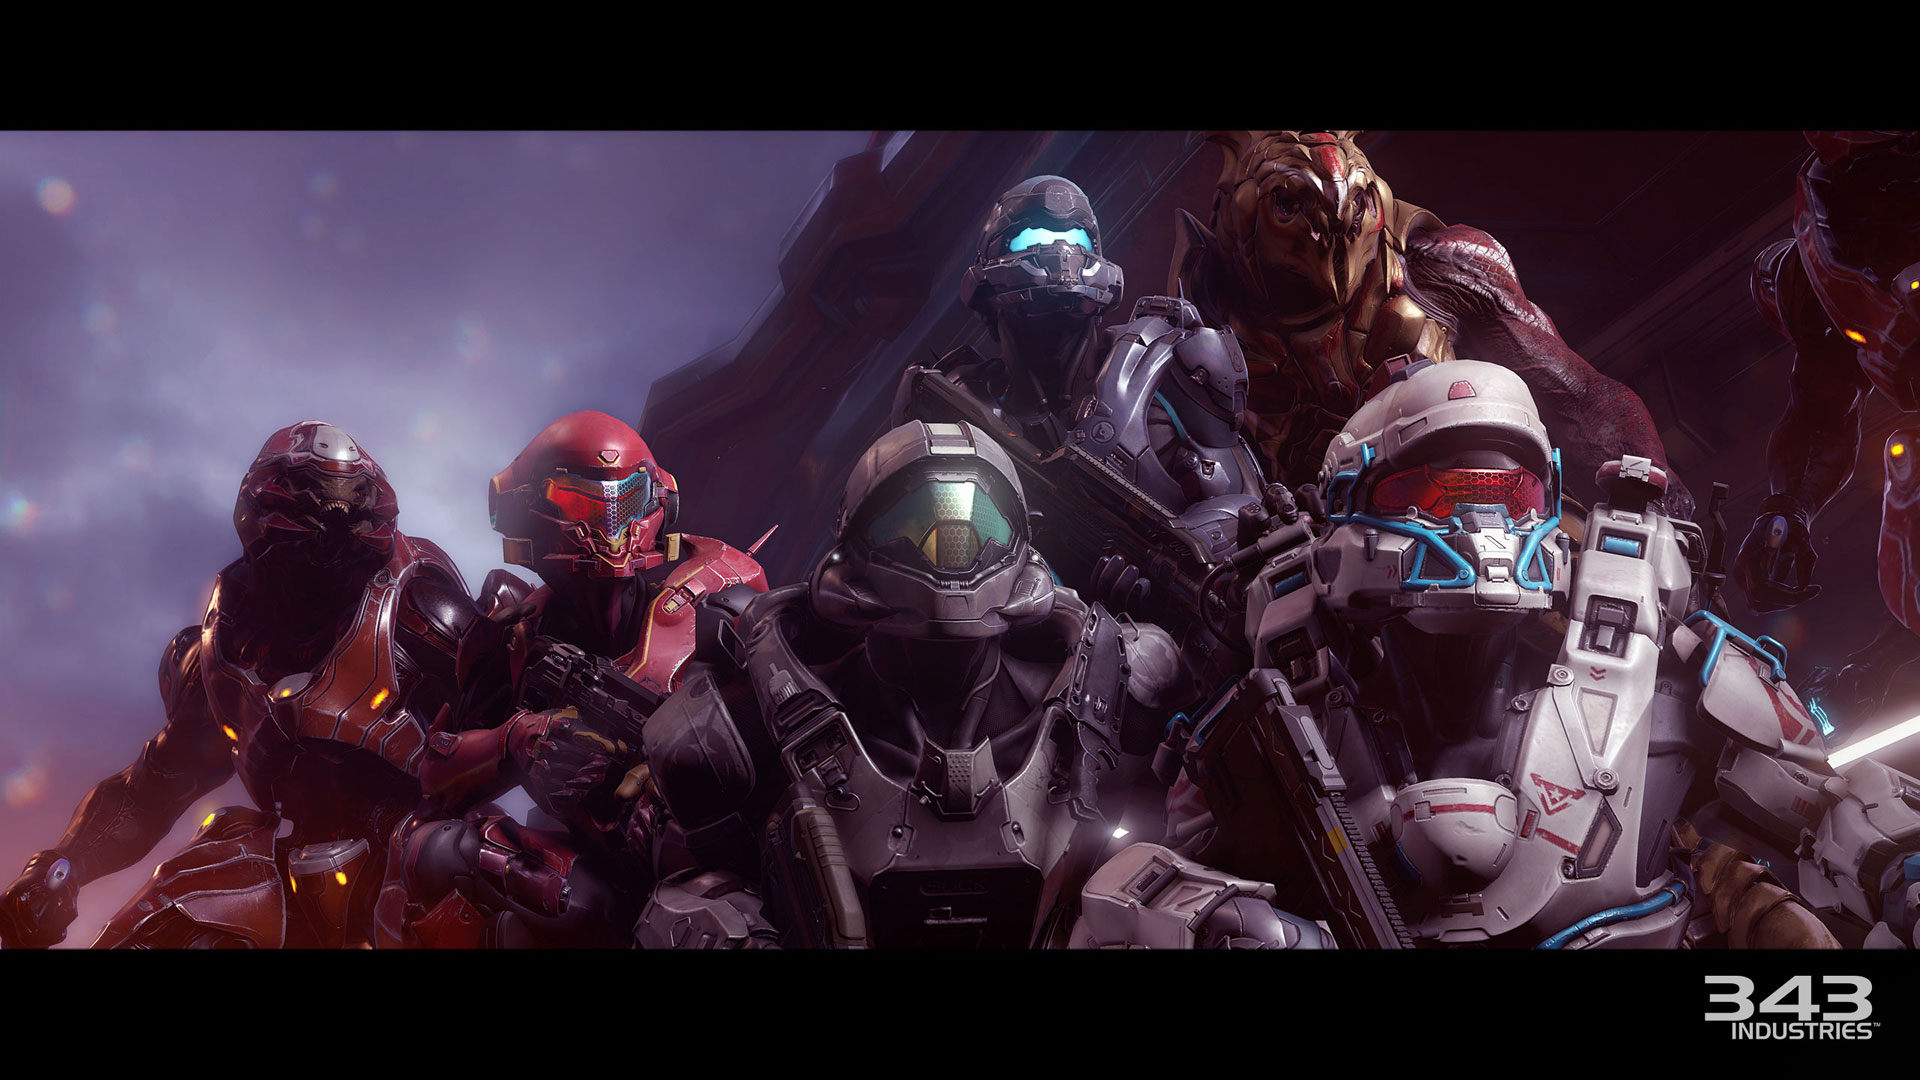 h5-guardians-cinematic-campaign-battle-of-sunaion-osiris-friends-and-family-c773940e25c14a109bddb3f4afe2876a